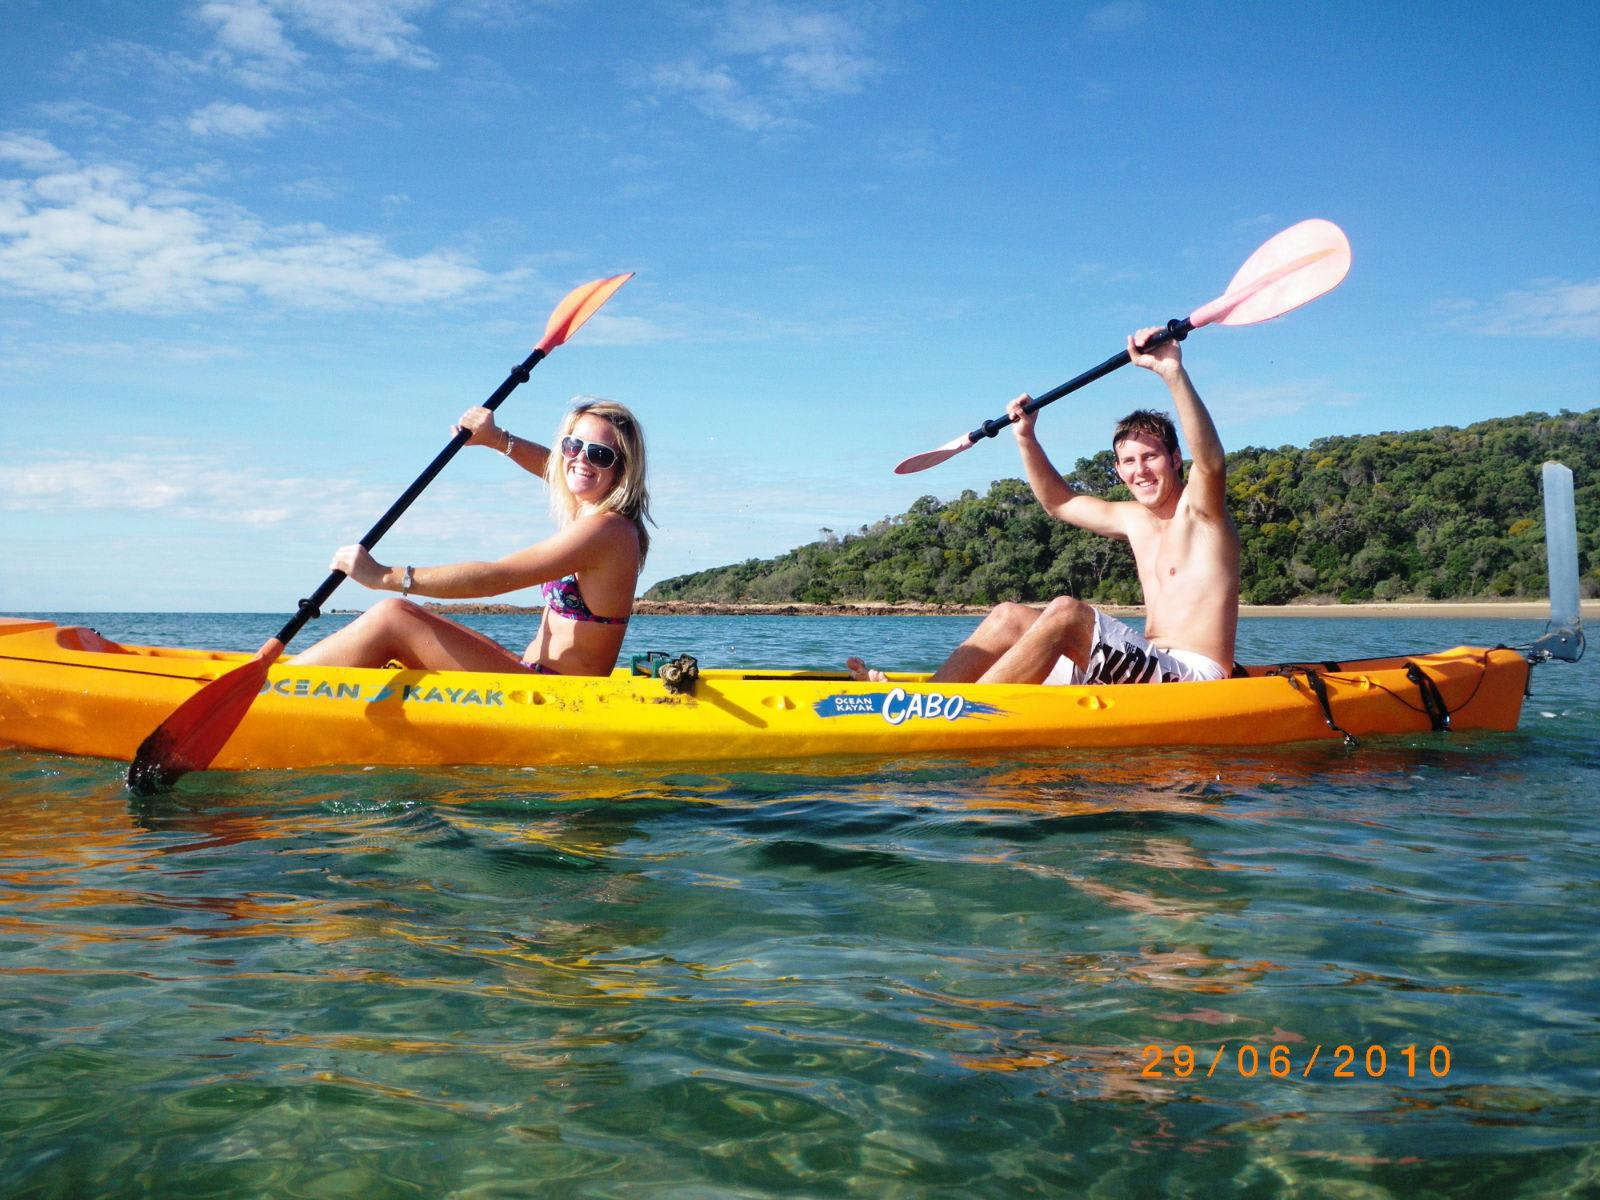 Middle Island Day Trip with Kayaking, Snorkelling and More, Whitsunday Islands